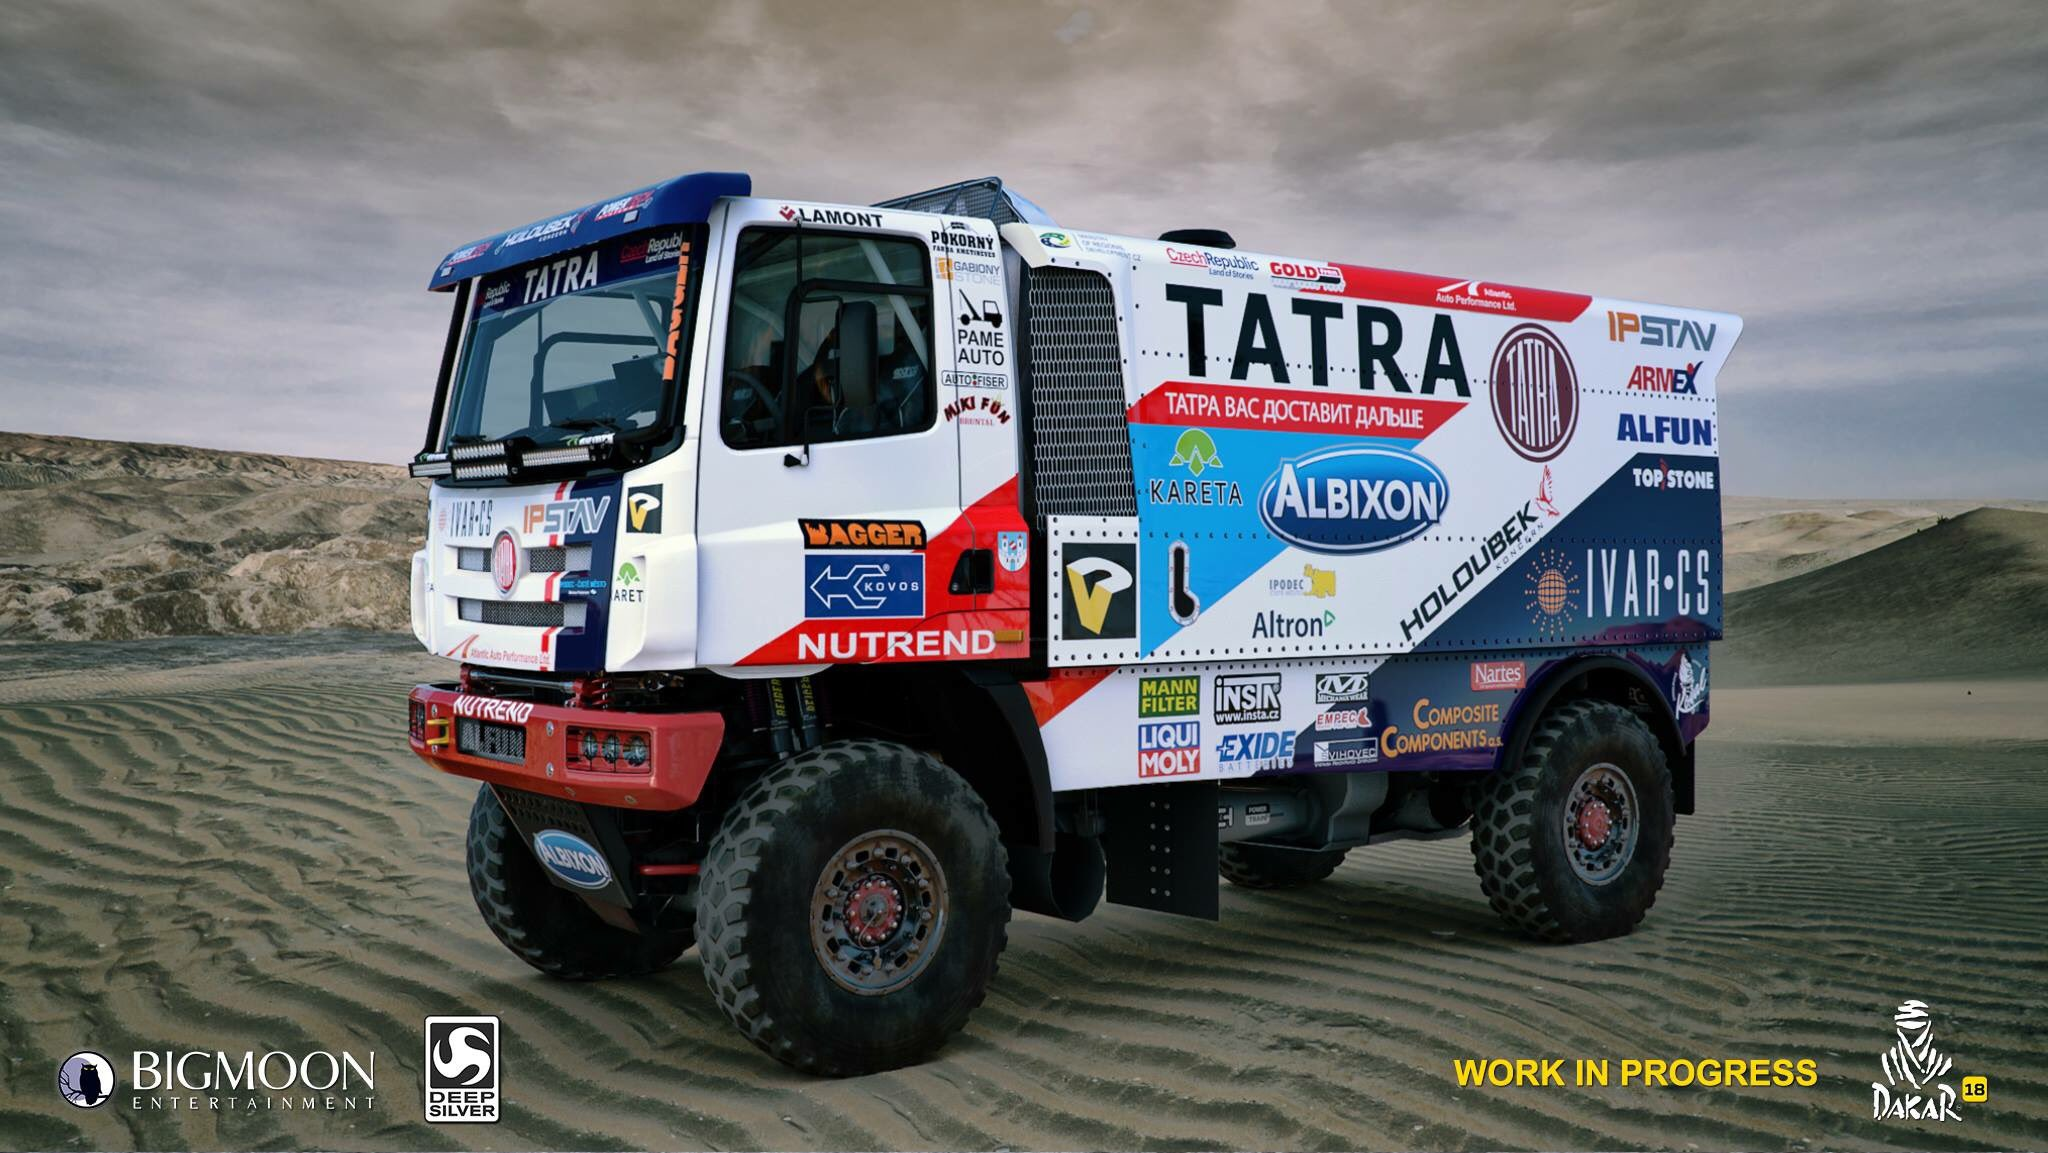 Dakar 18 lorry preview